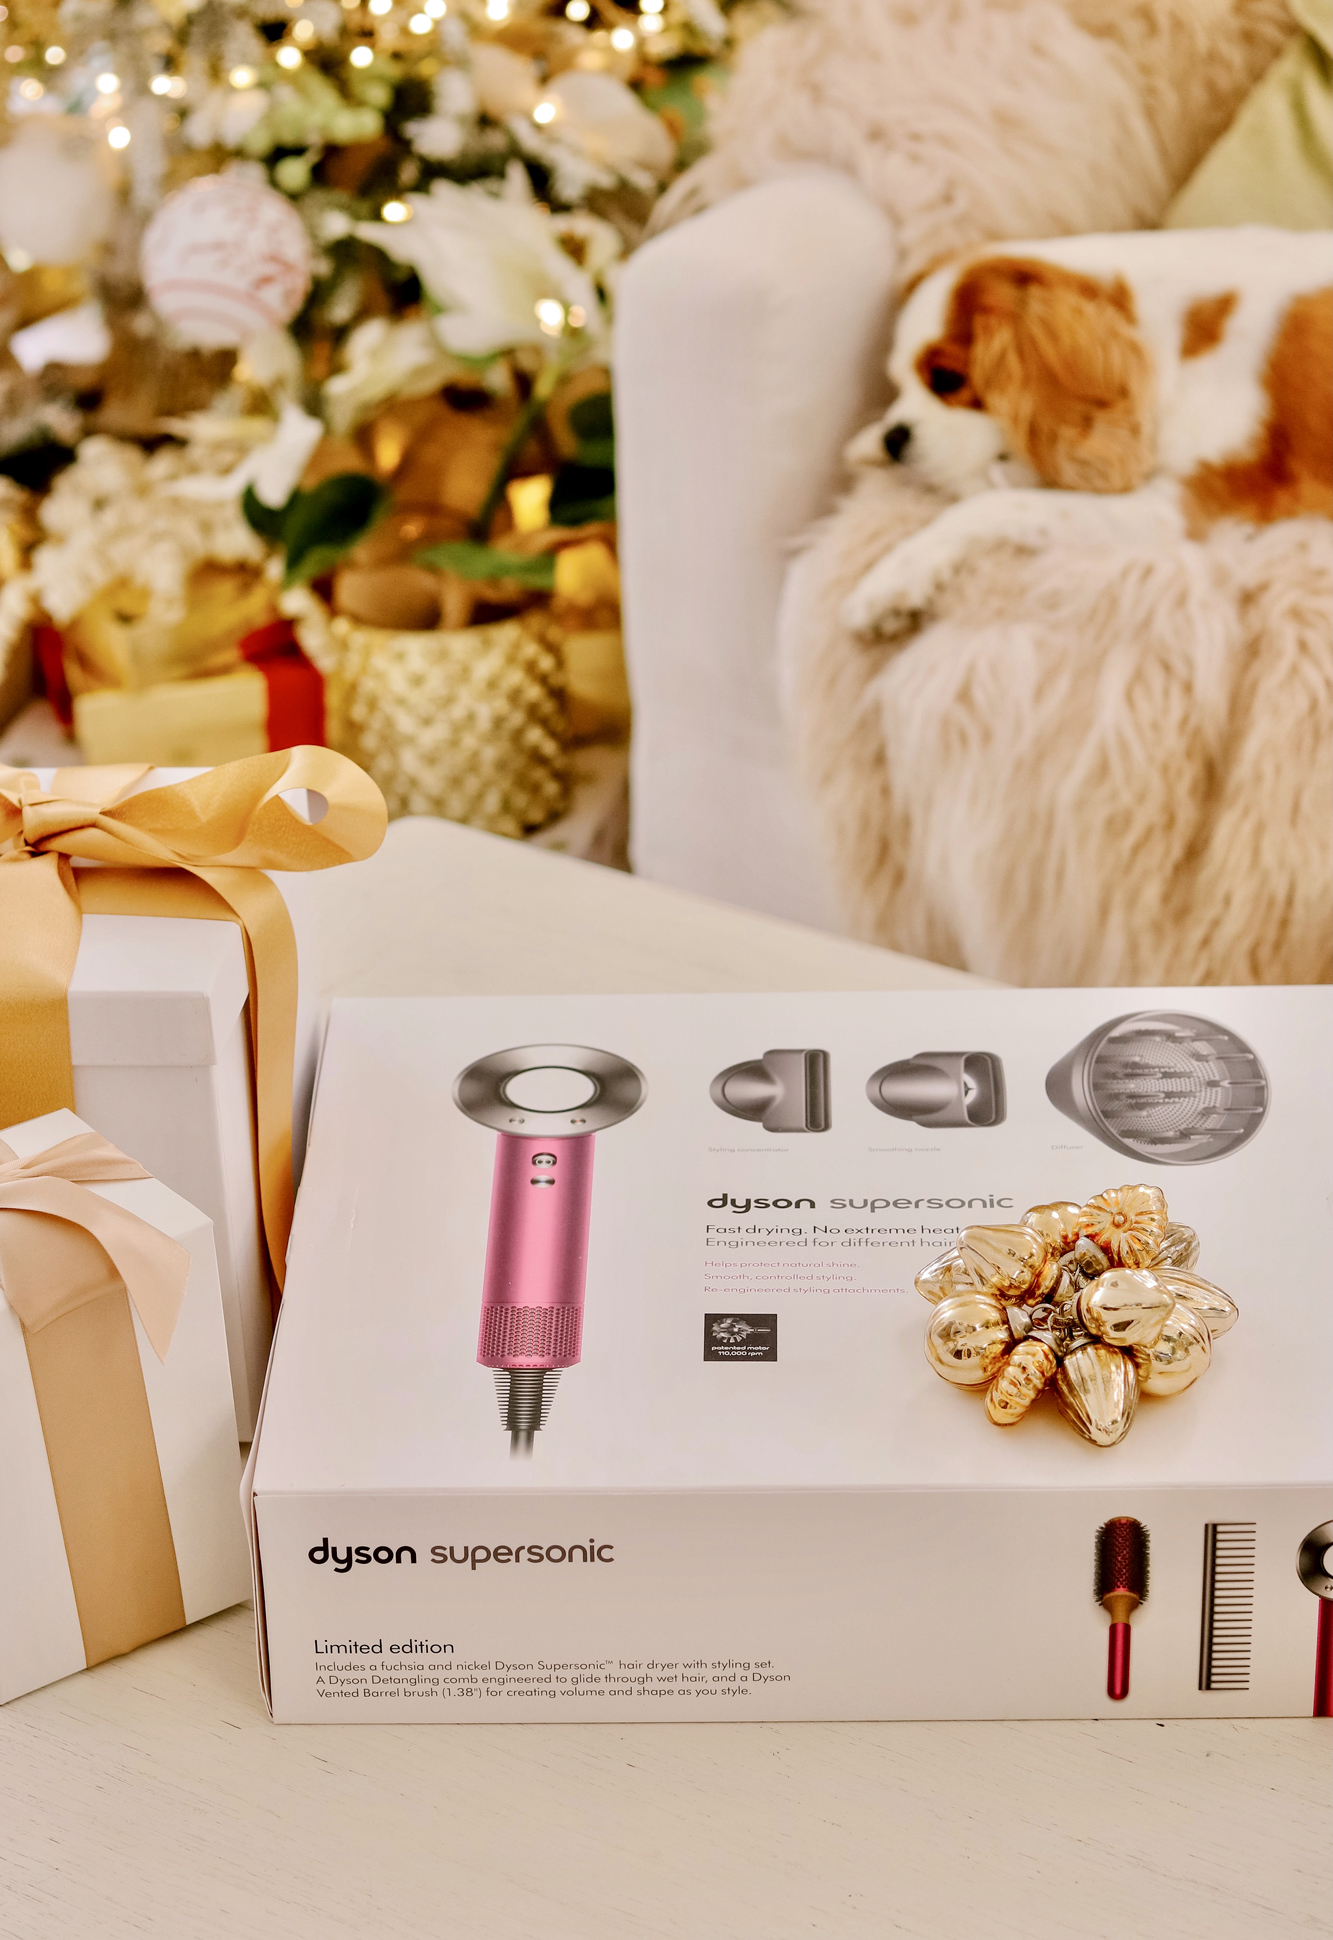 Top Beauty Christmas Gifts: Dyson Hair Dryer review from Nordstrom - affordable and best top haircare gifts dyson hair products